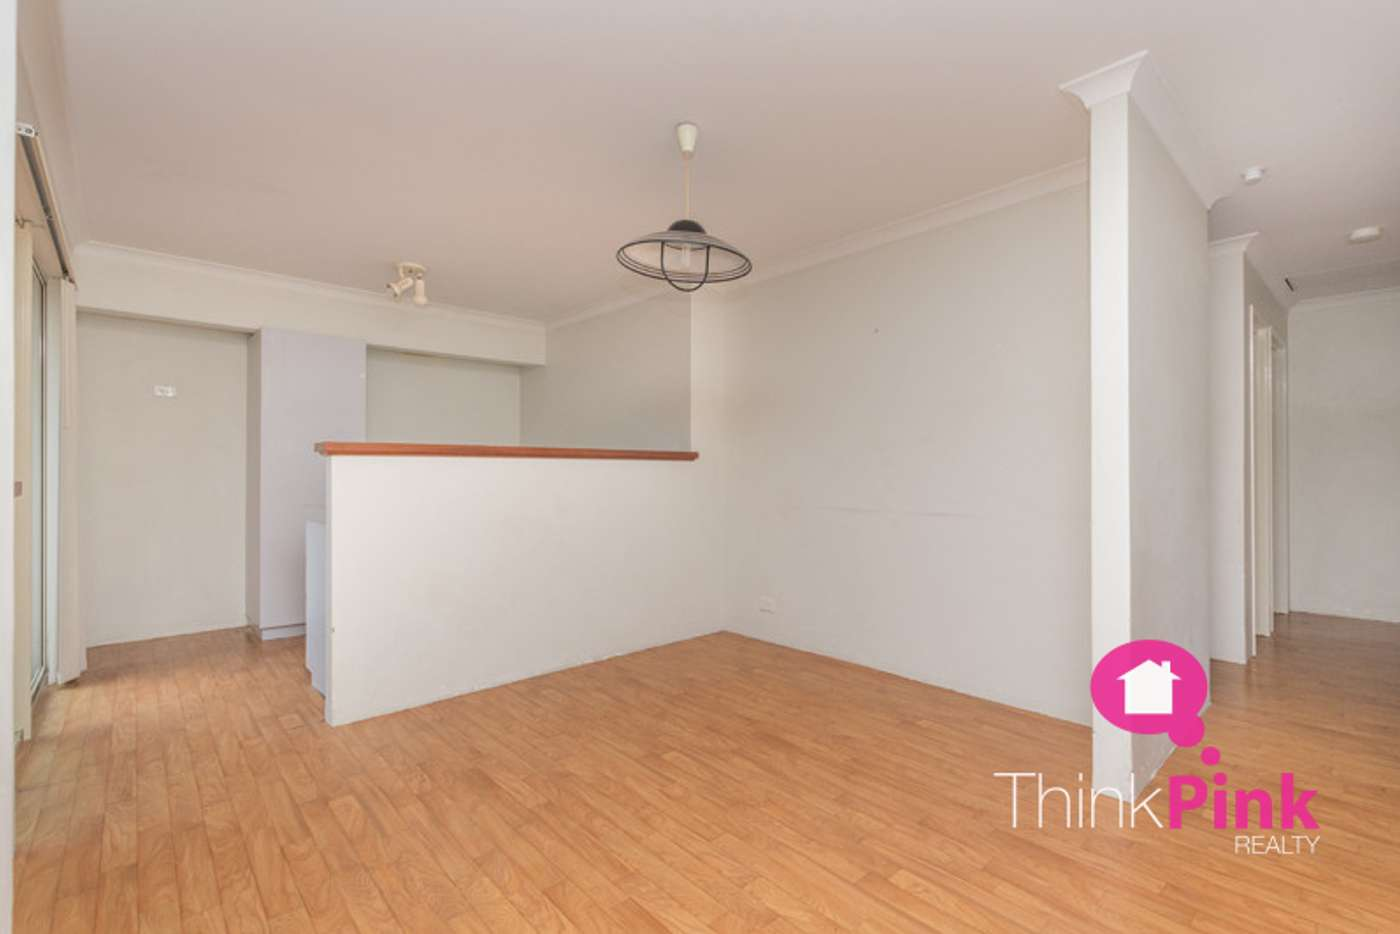 Sixth view of Homely villa listing, 11A Colombo Street, Victoria Park WA 6100